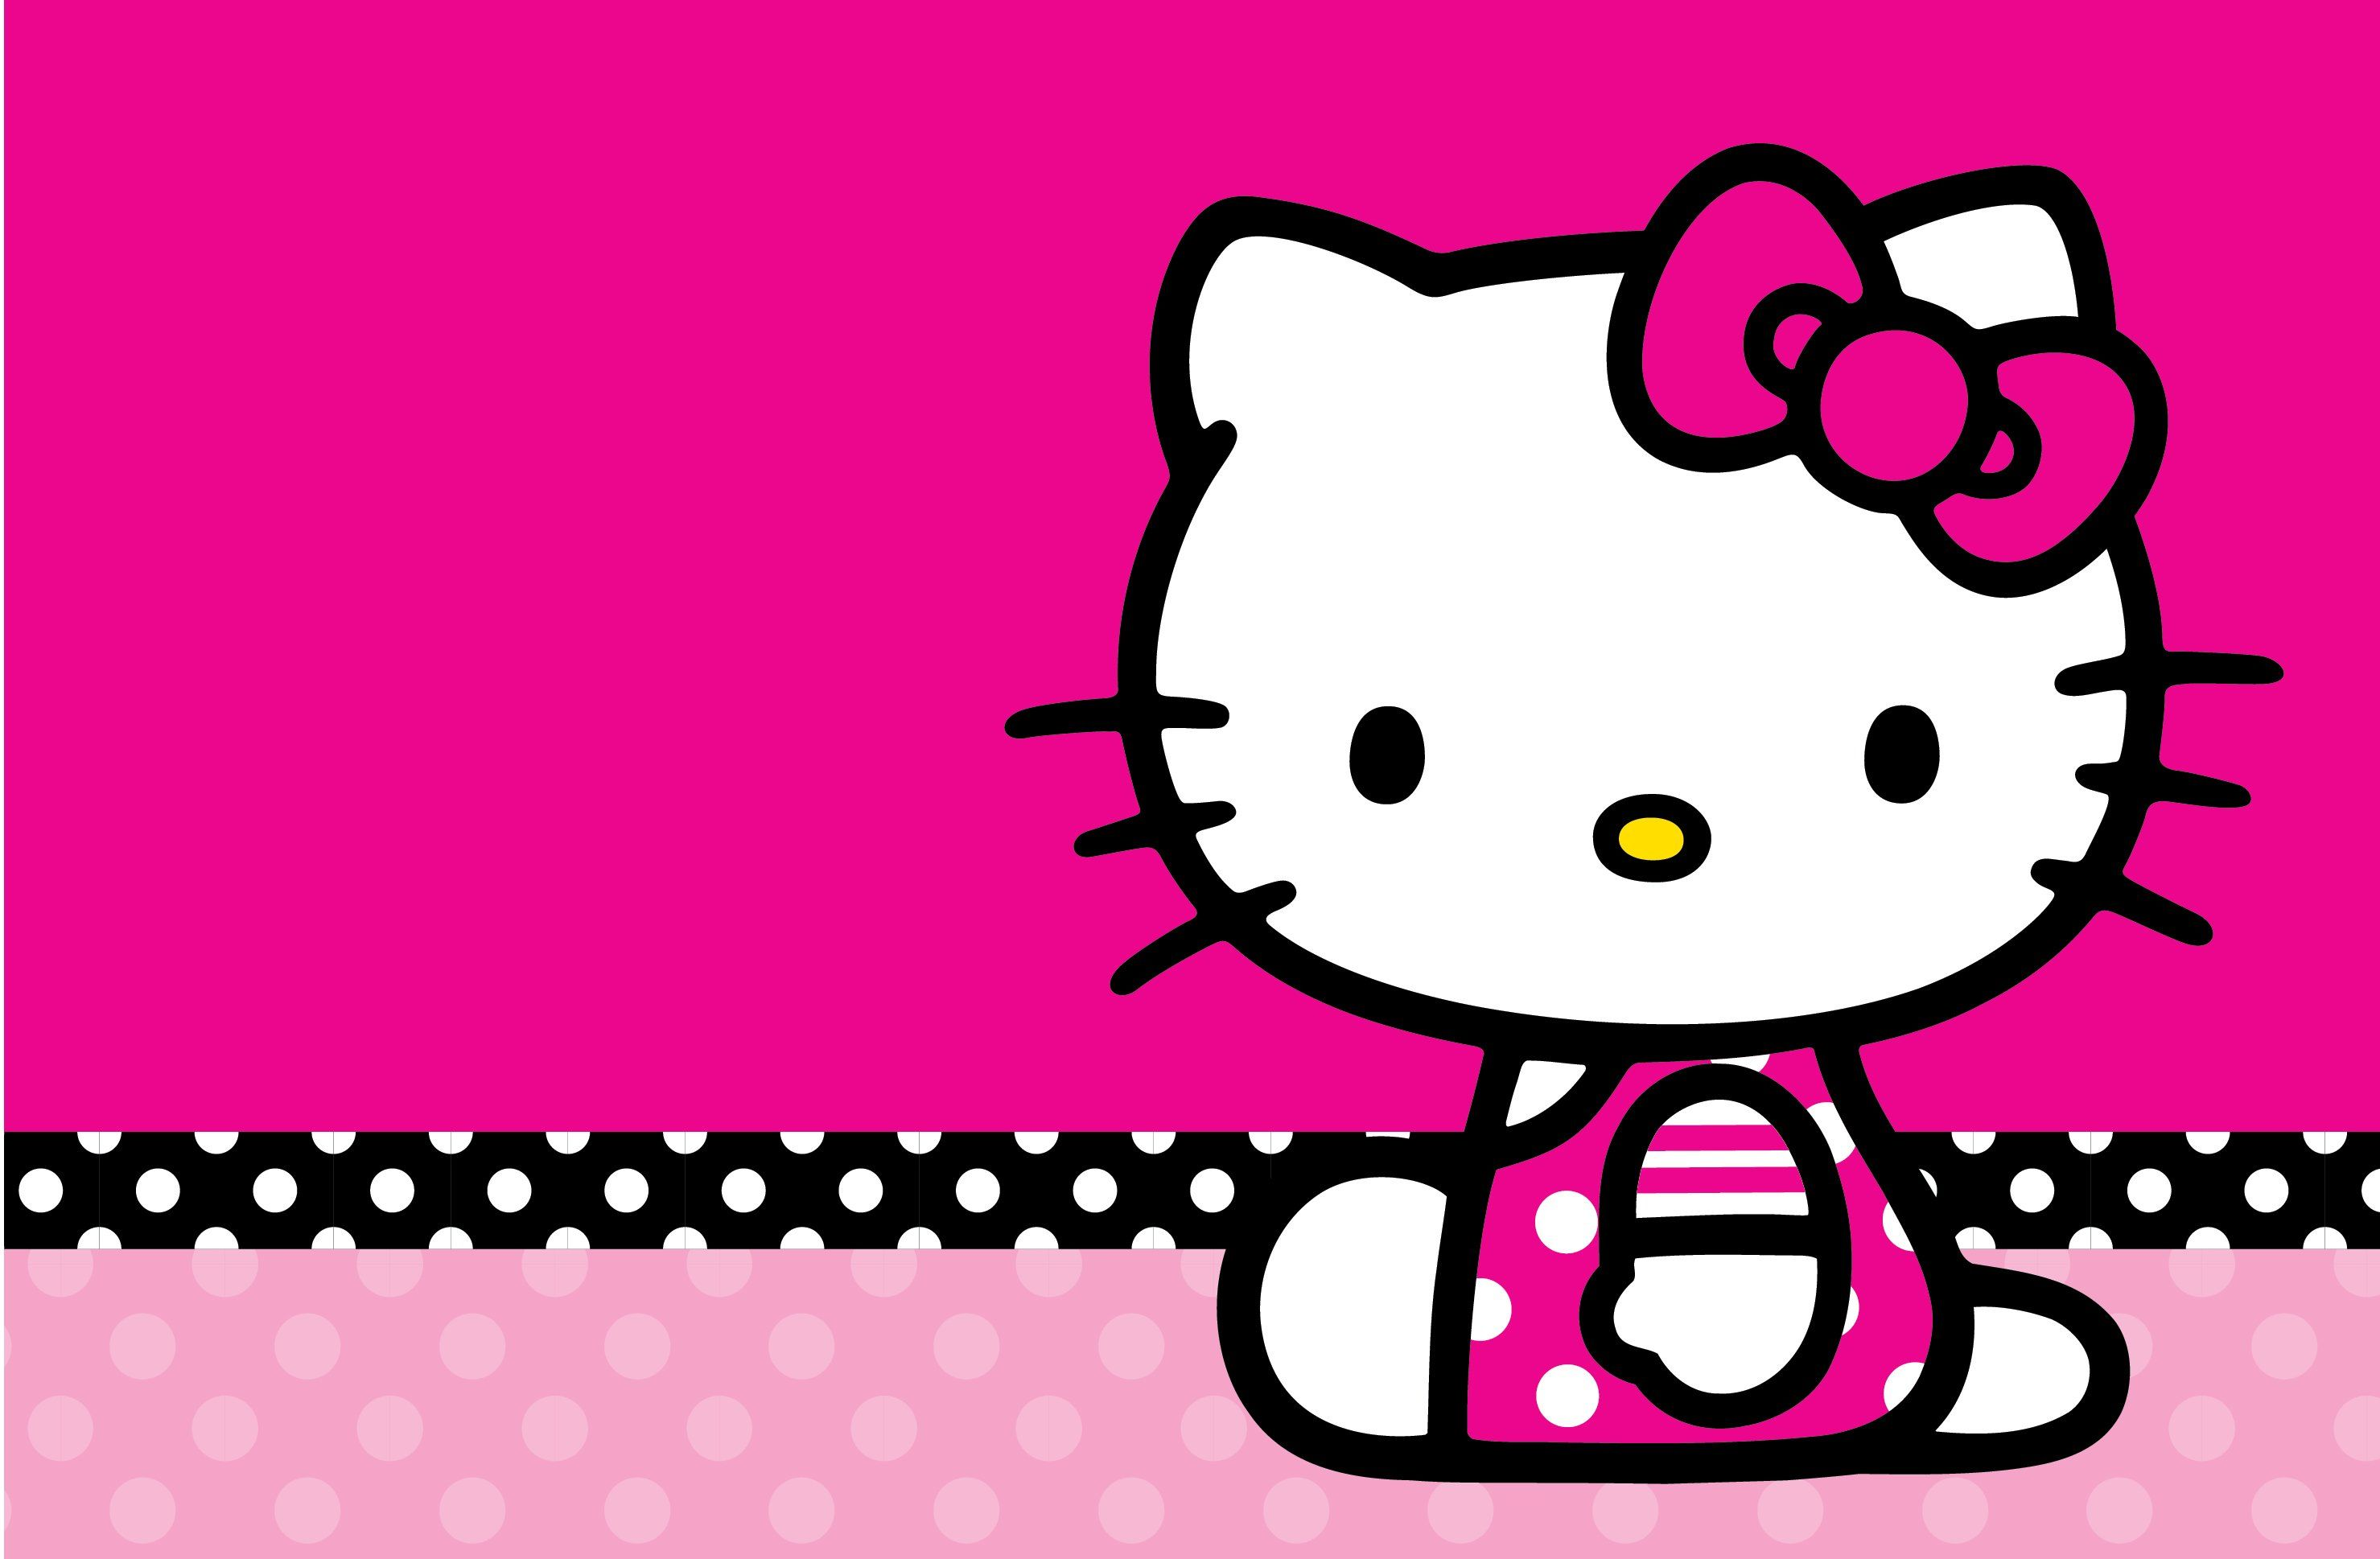 Hello Kitty Wallpaper Desktop Background Hello Kitty Images Hello Kitty Wallpaper Hd Hello Kitty Backgrounds